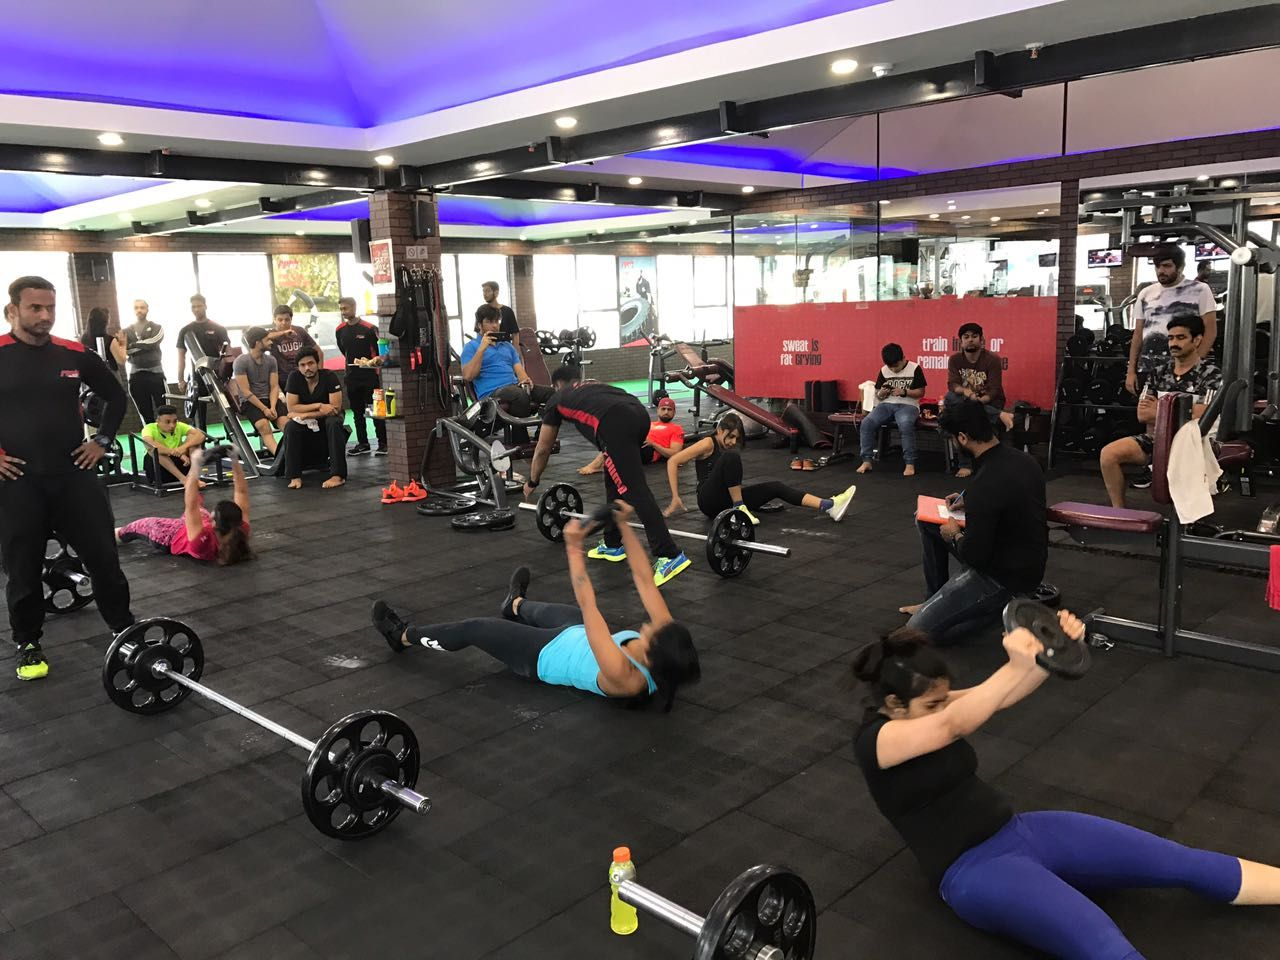 Your Body Is A Reflection Of What You Are If You Want To Look Healthy You Will Have To Be Healthy Rushfit Holistic Fitness Workout Challenge Fitness Regime